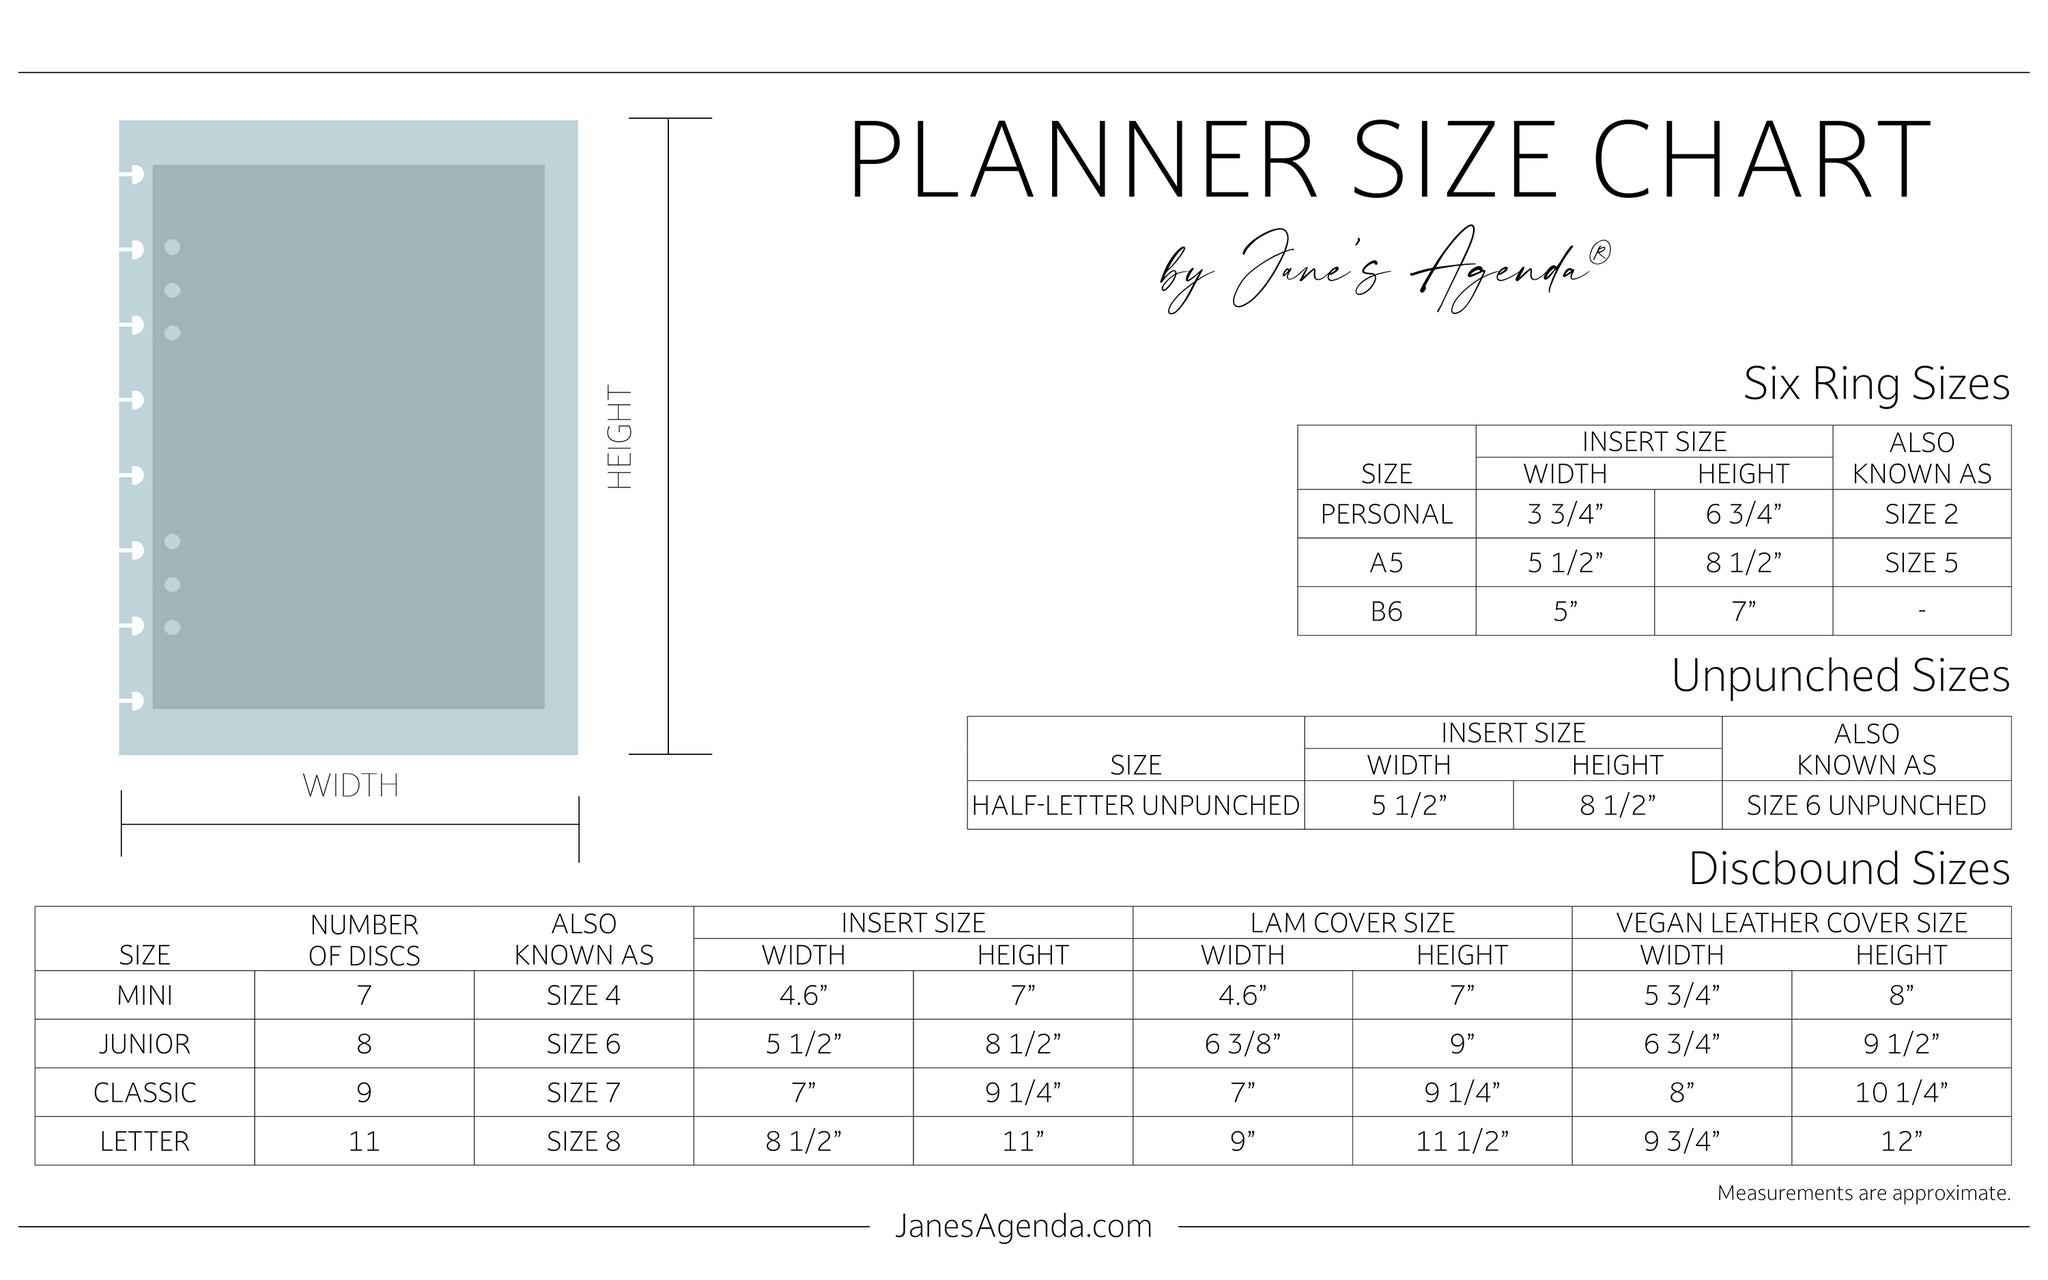 Planner Size Chart by Jane's Agenda